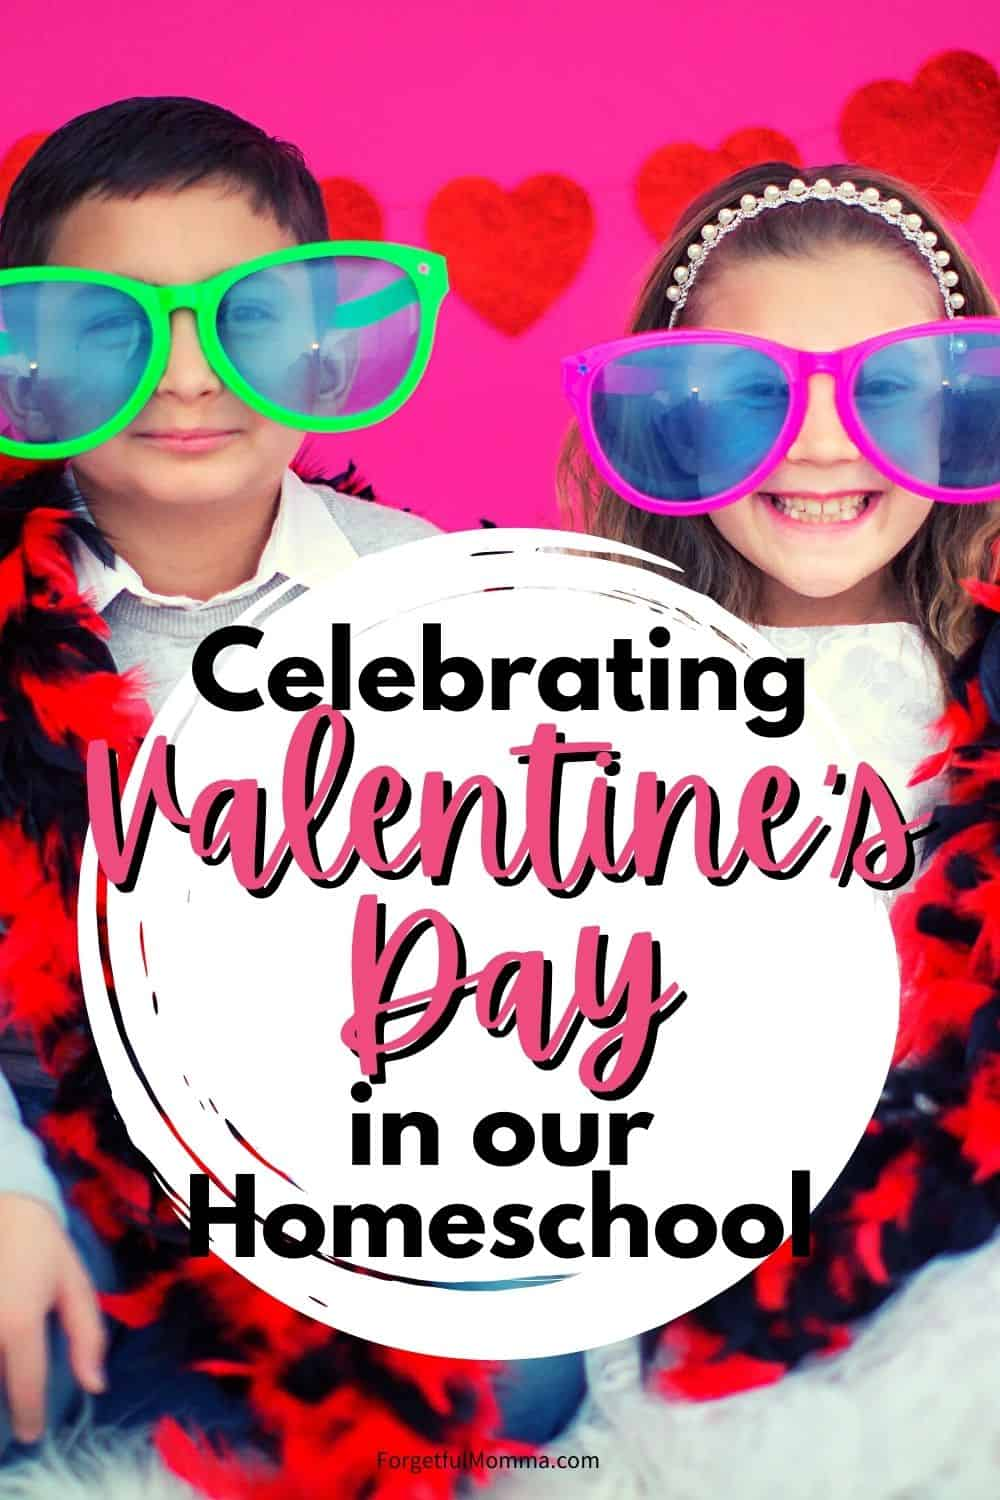 Celebrating Valentine's Day in Our Homeschool